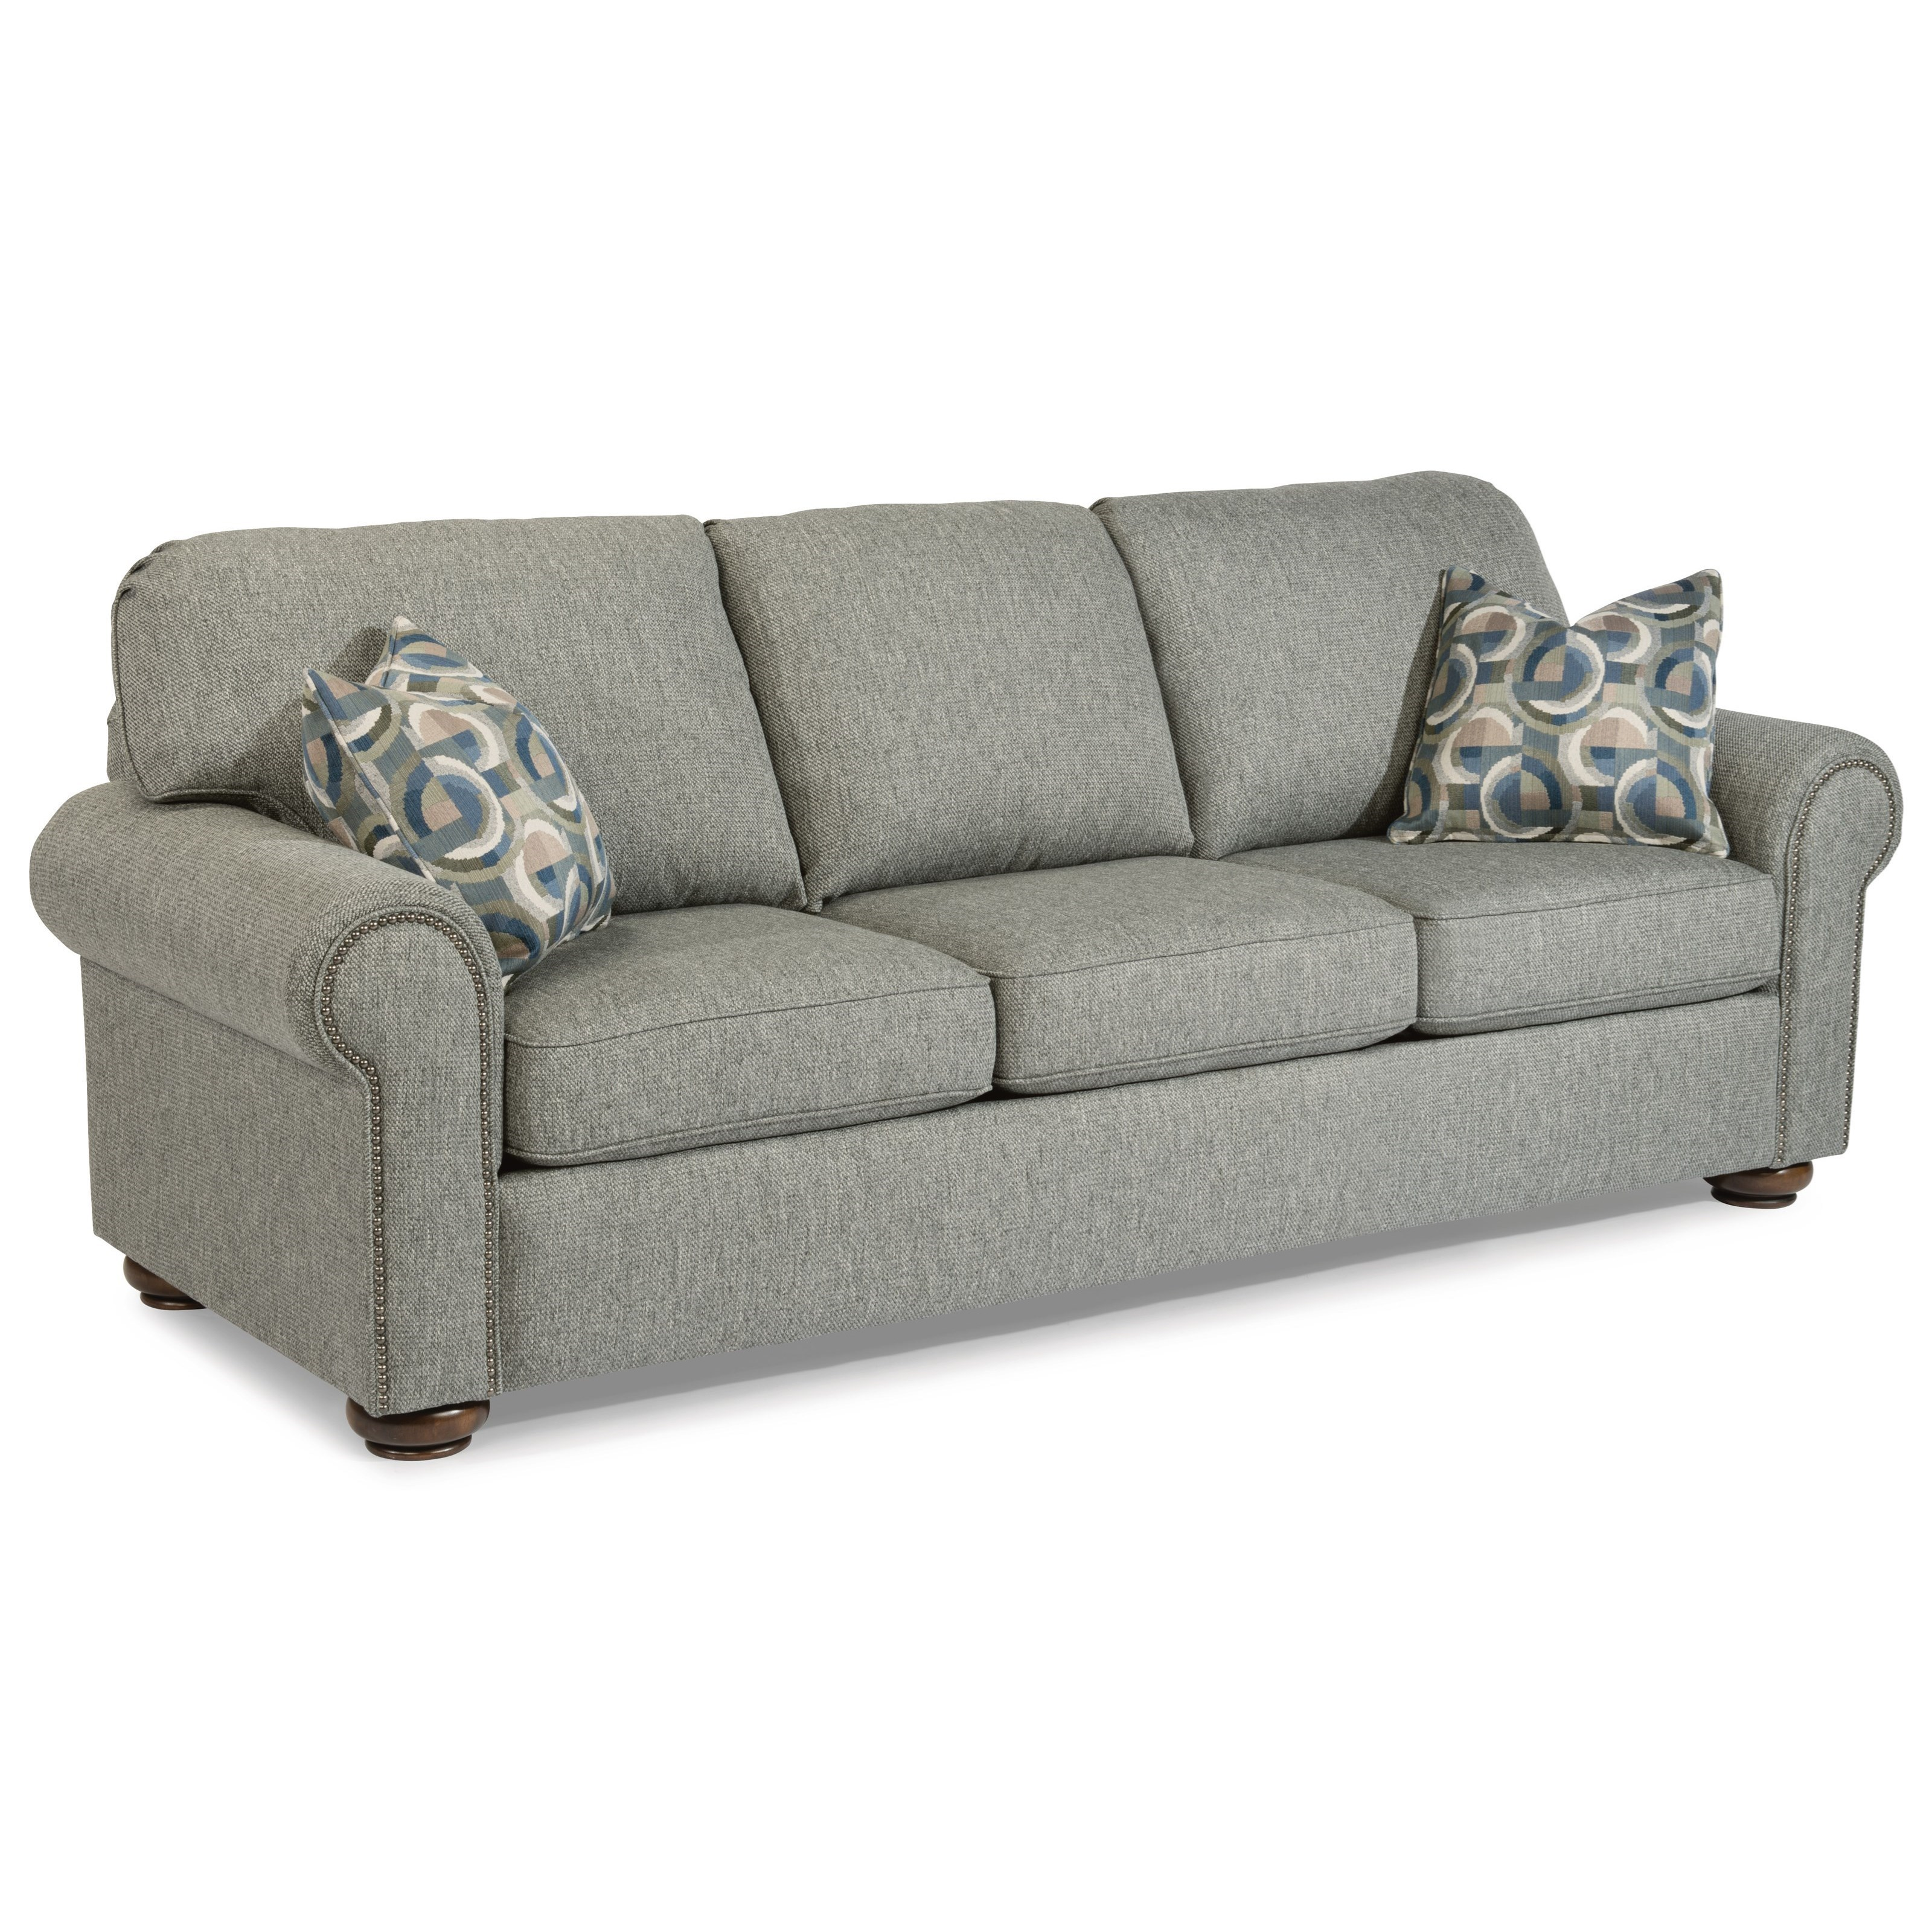 Traditional Queen Sleeper Sofa with Nailhead Trim